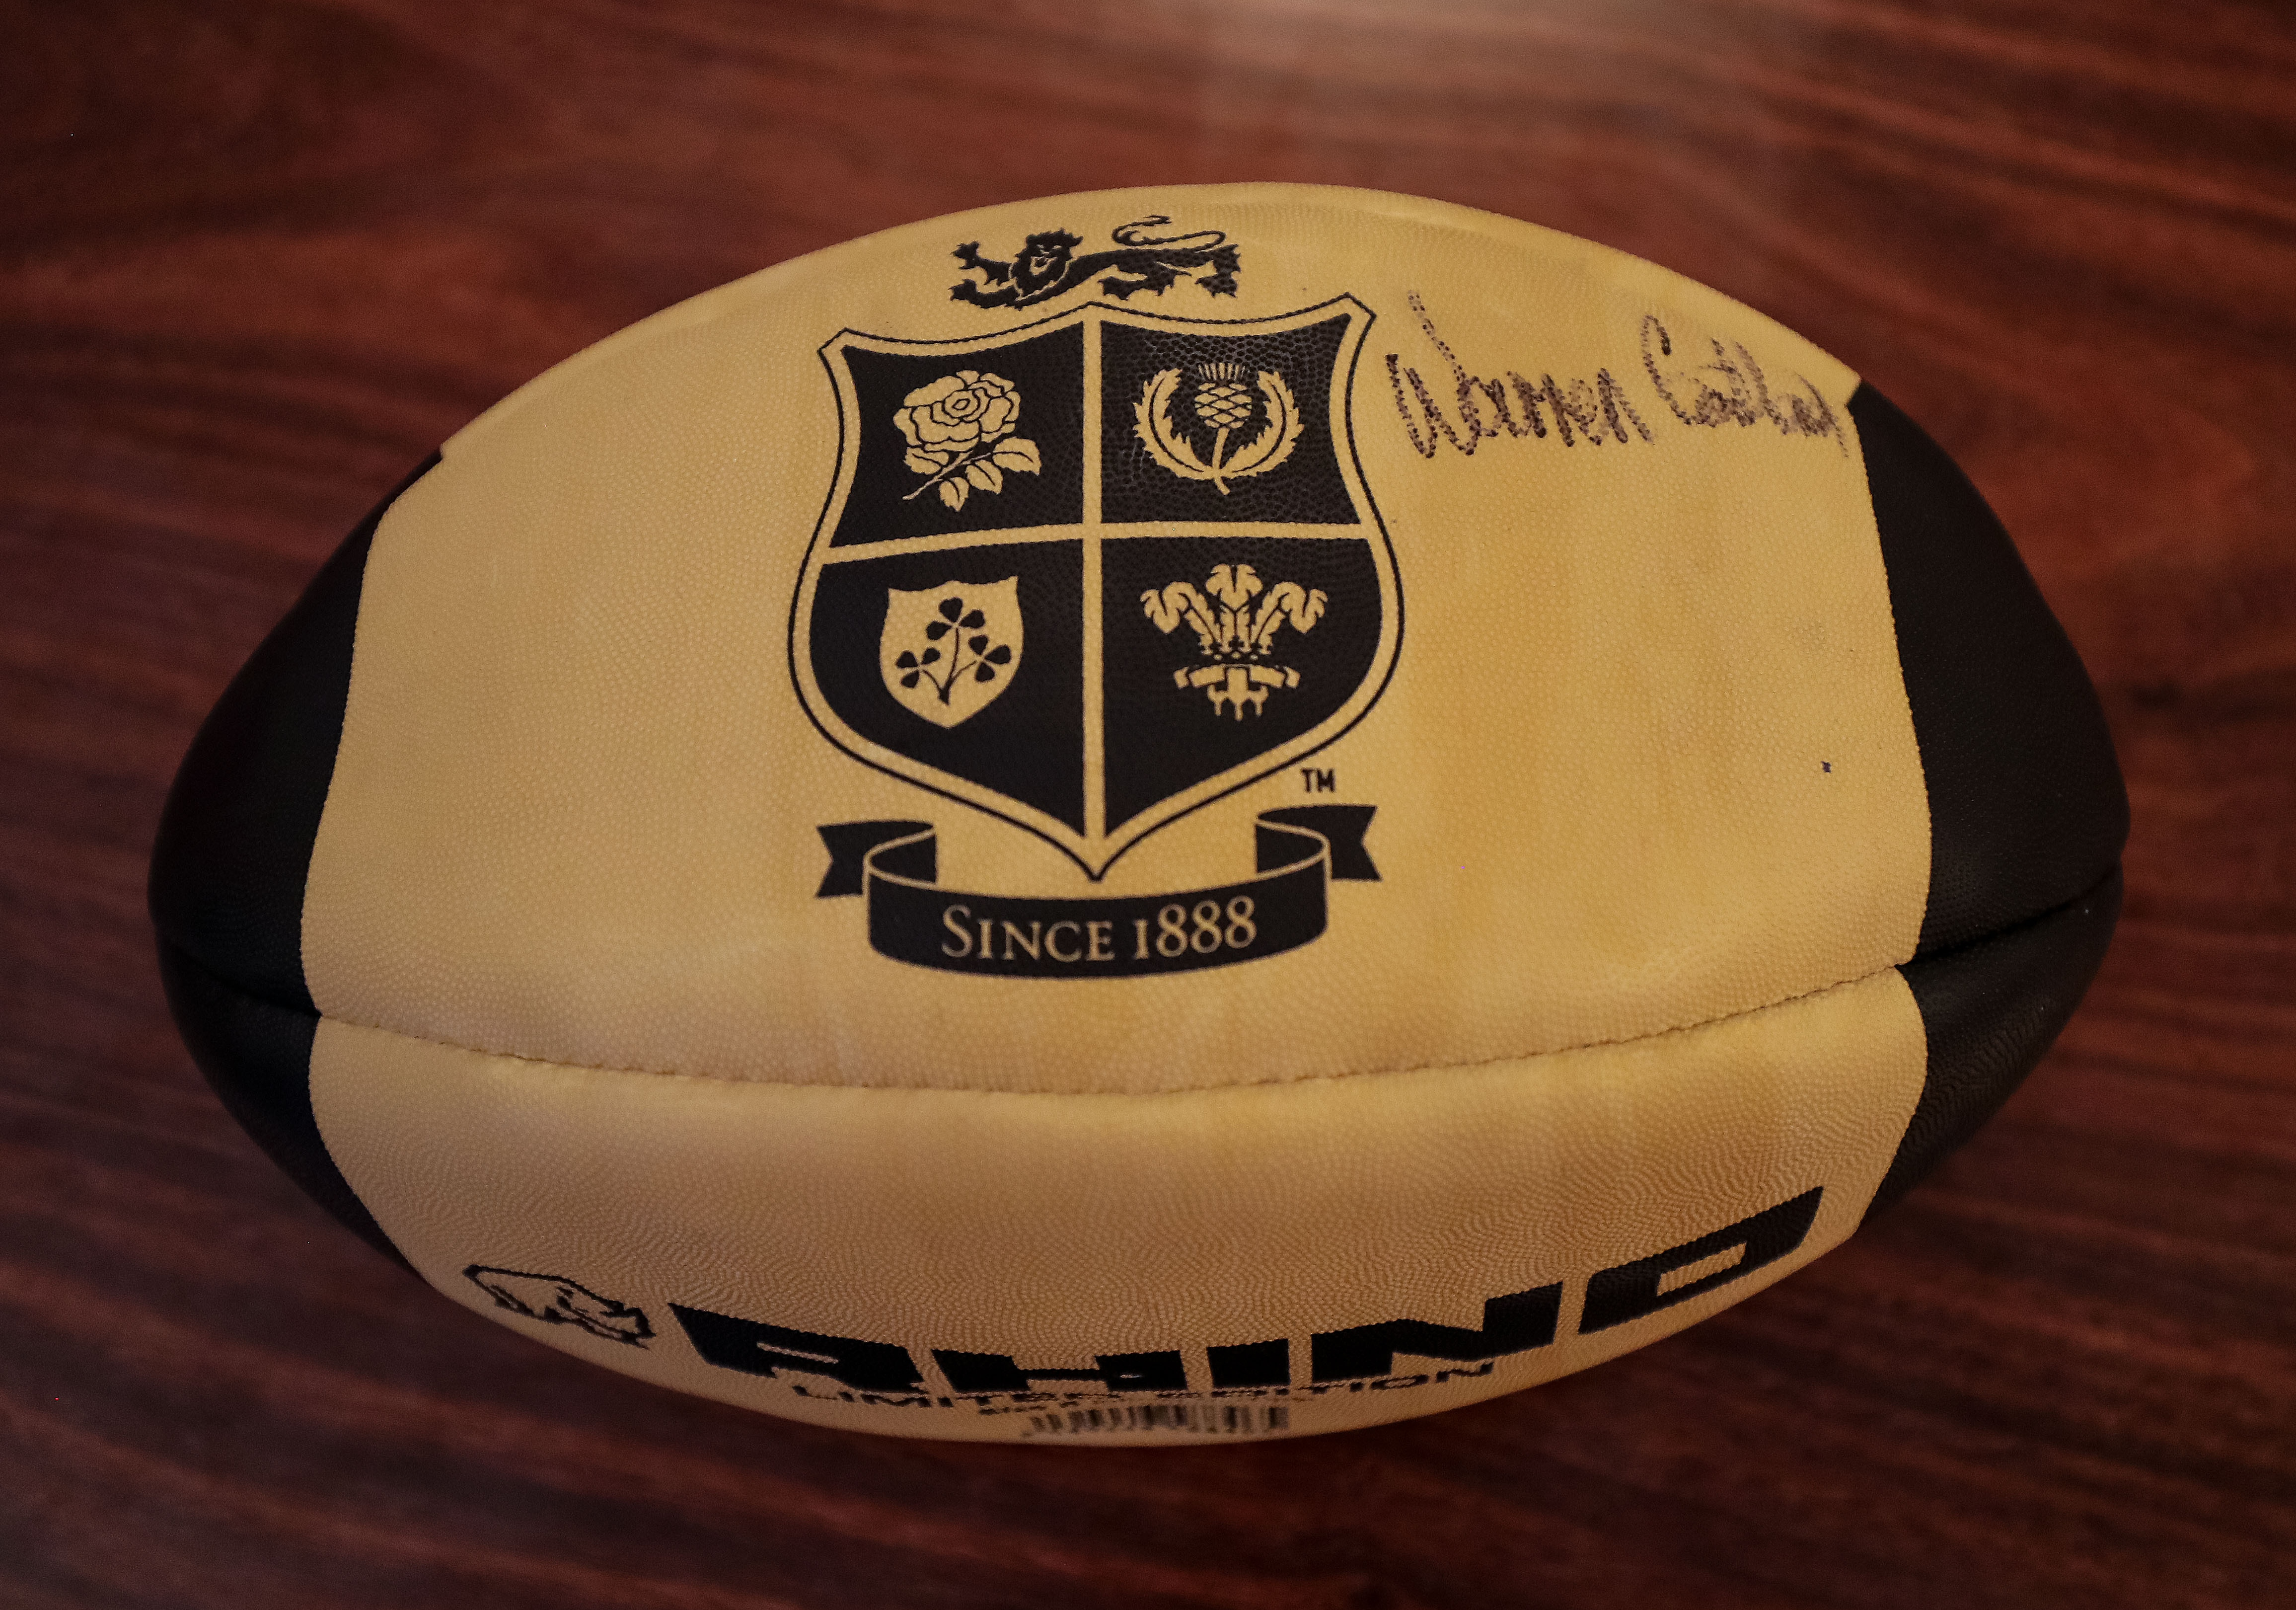 Terms & Conditions – Limited Edition Retro Rugby Ball Signed by Warren Gatland